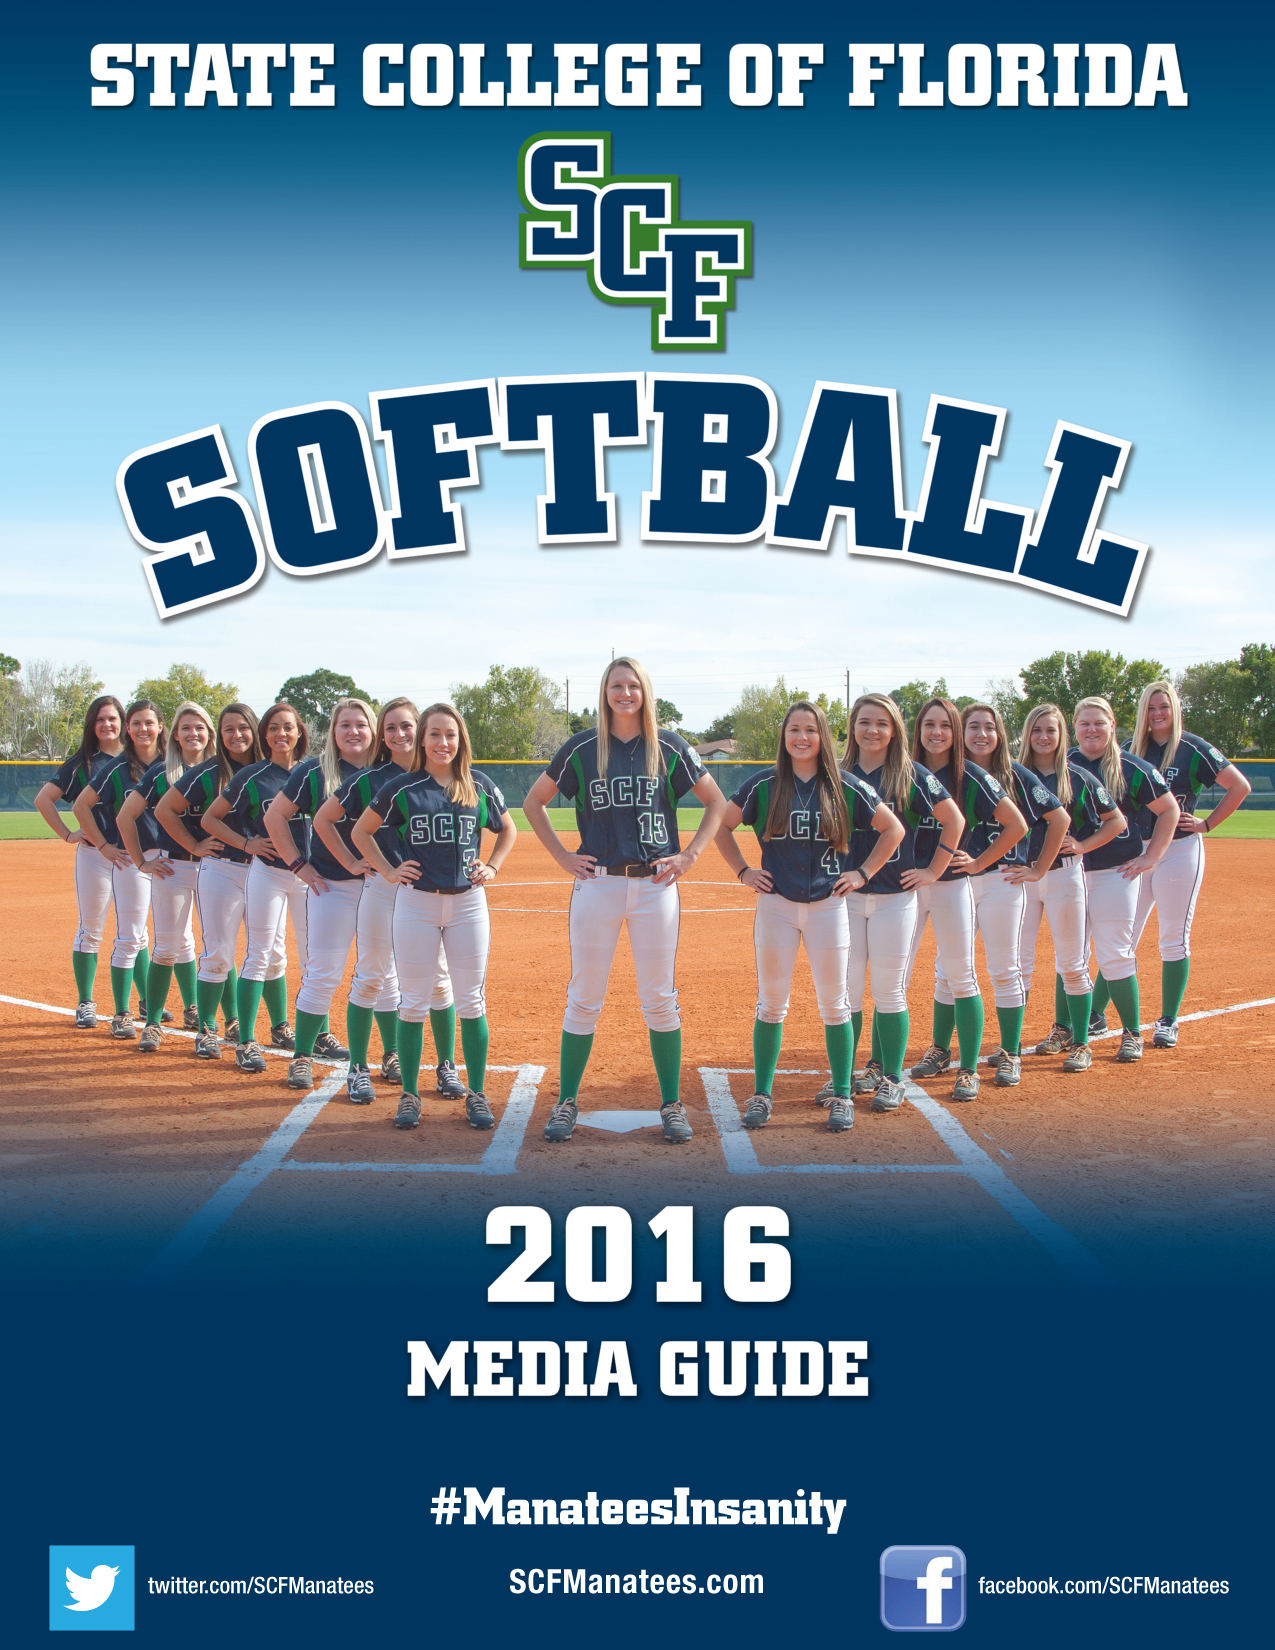 SCF's Communications & Marketing Department won a First Place Award of Excellence from the Association of Florida Colleges for the College's 2016 Softball Media Guide.